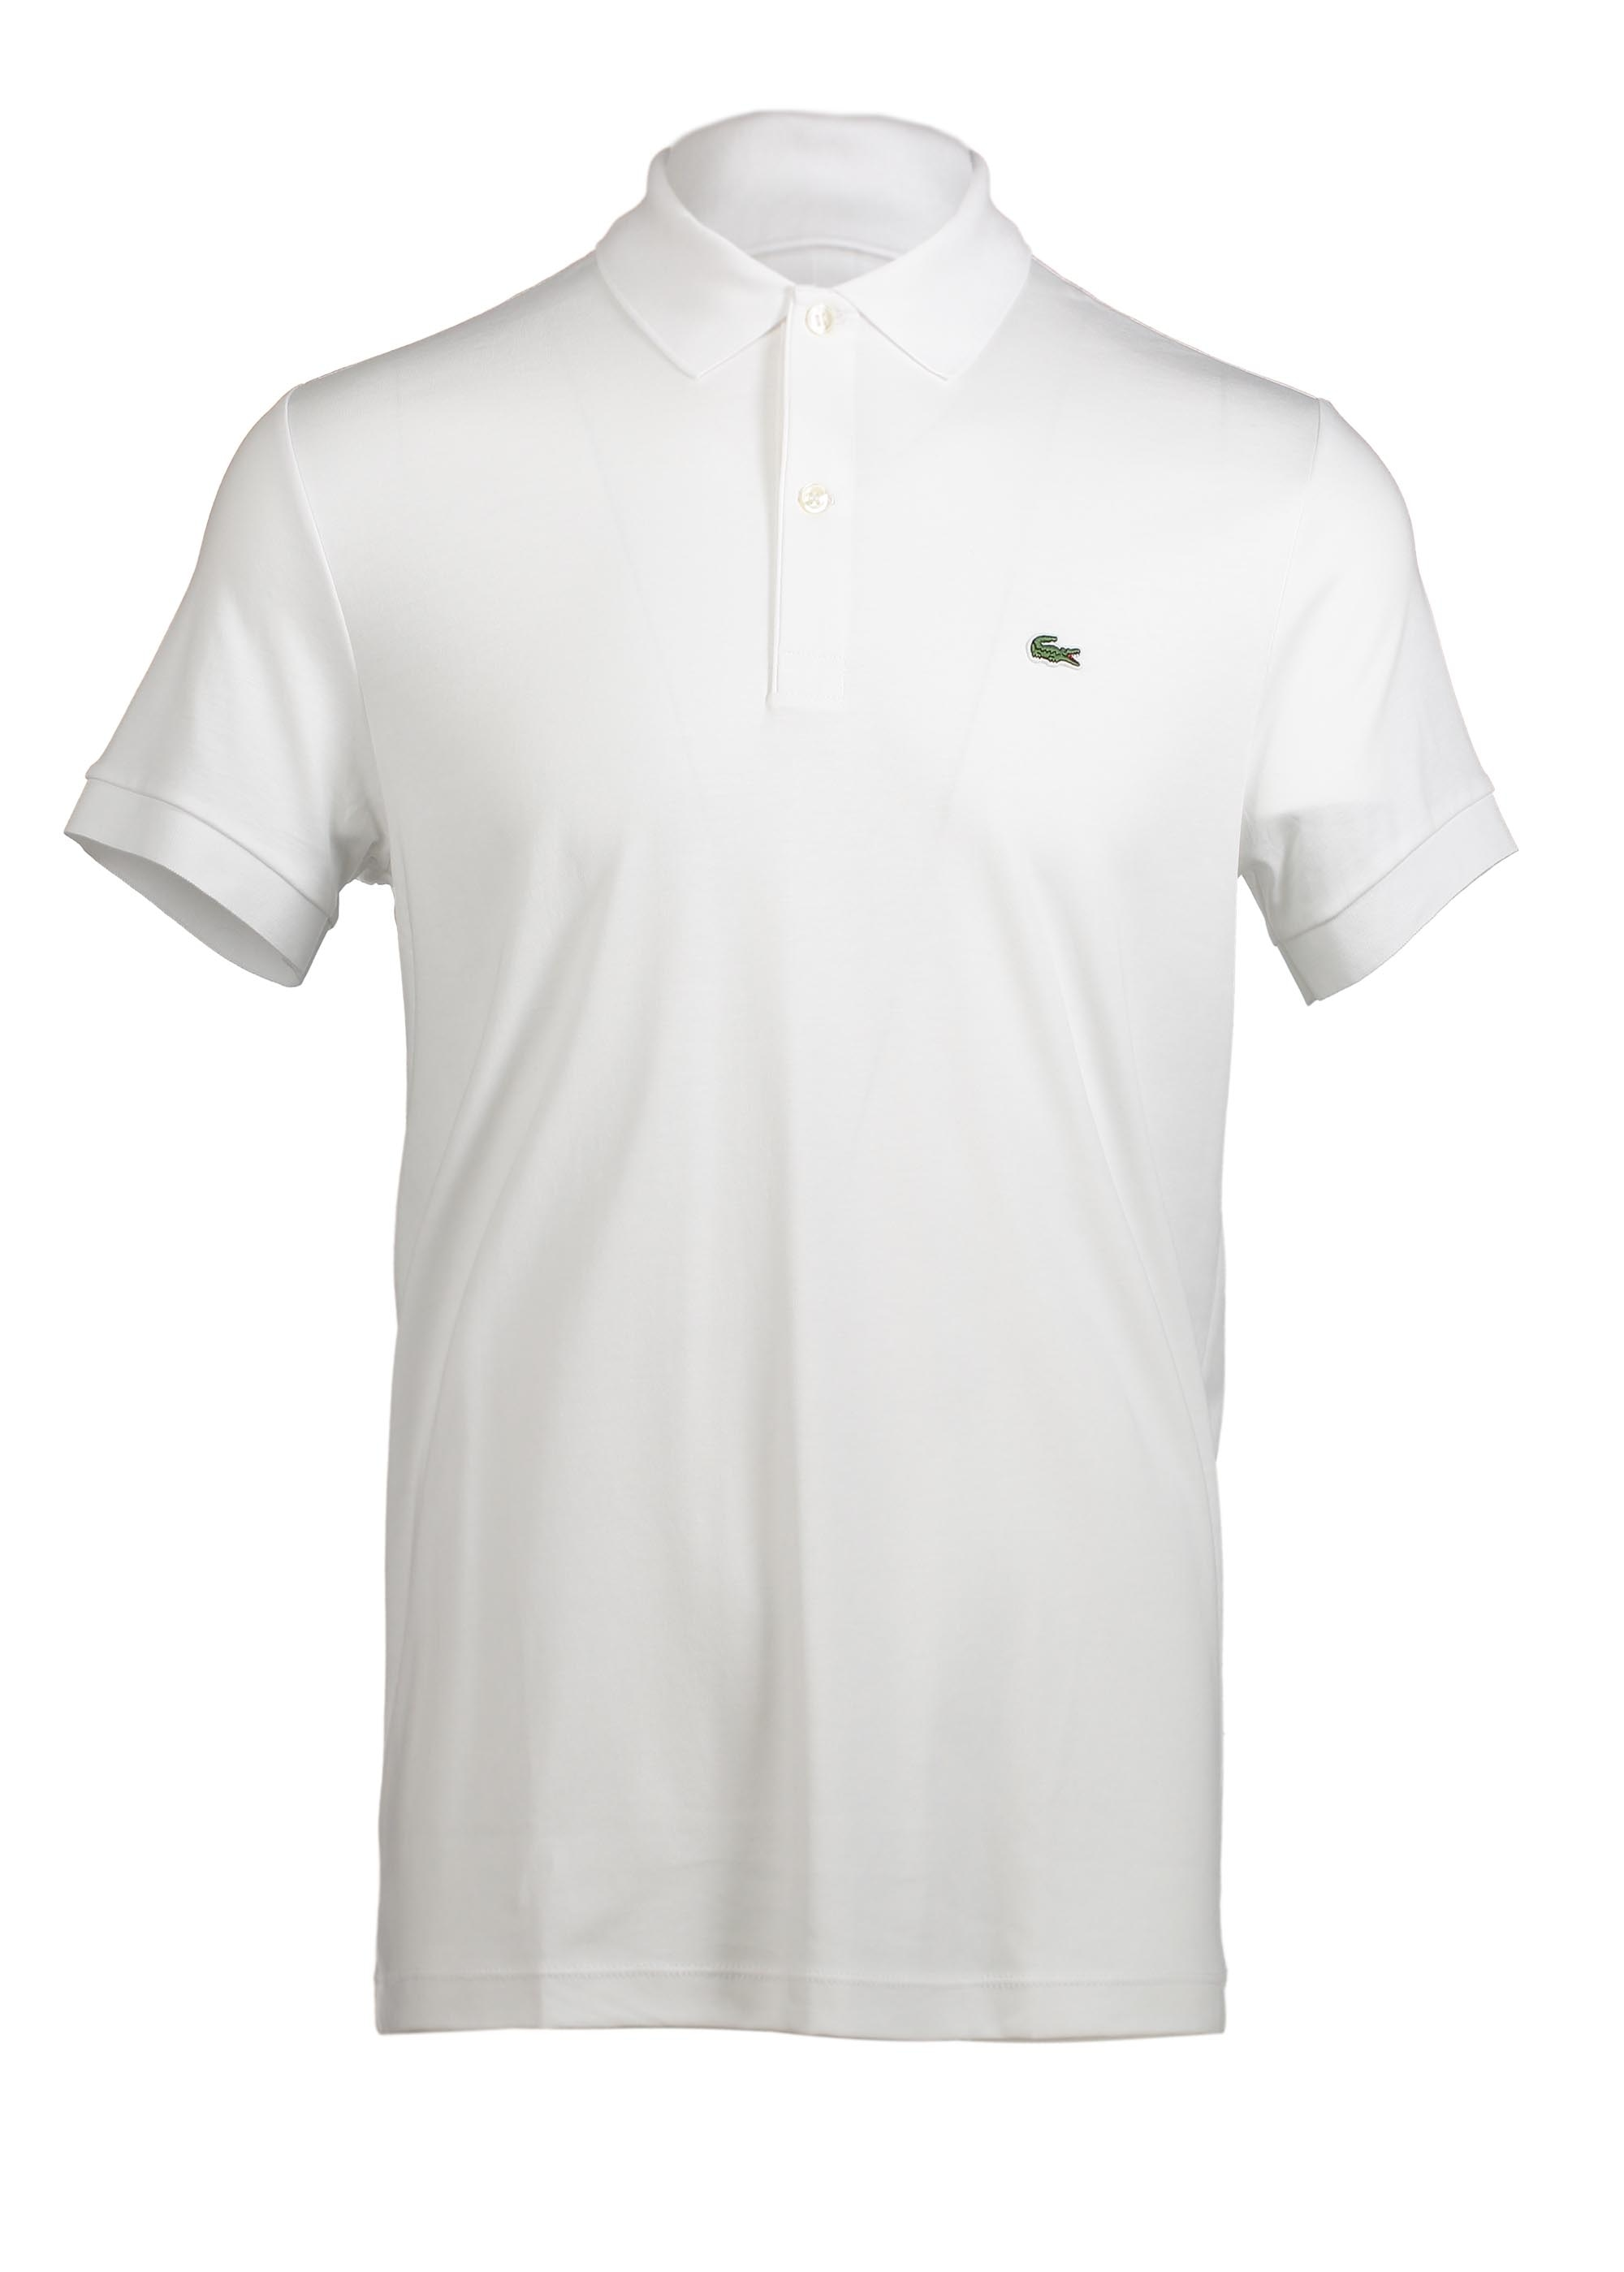 b458cb2141a1 Lacoste Polo Shirt - White - Triads Mens from Triads UK